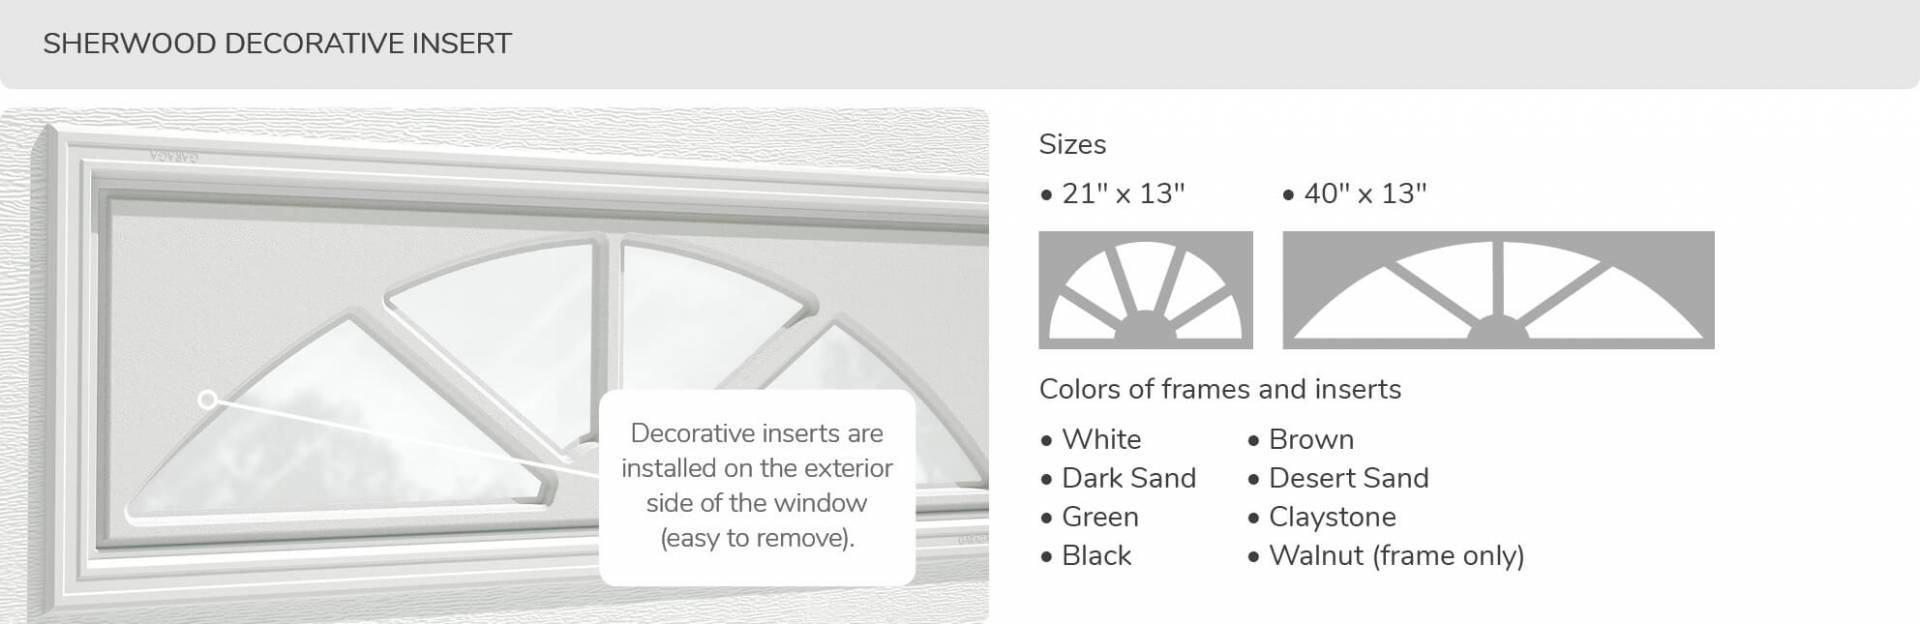 Sherwood Decorative Insert, 21' x 13' and 40' x 13', available for door R-16